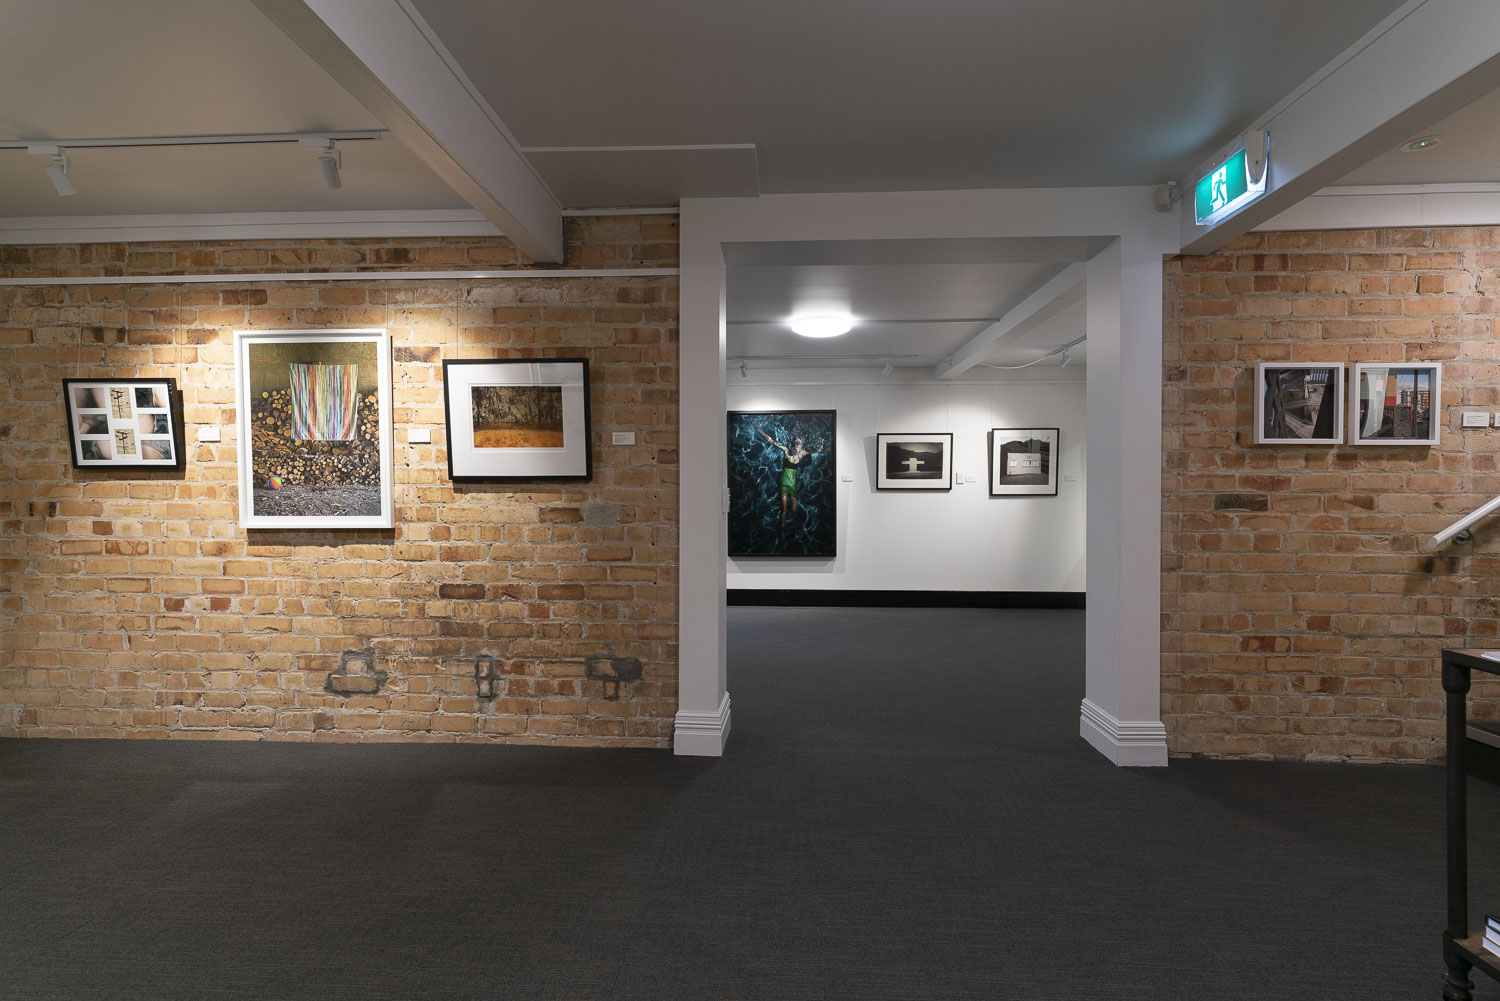 Installation of the PhotoForum Members' Show, 2018 at Studio 541, Auckland. Photo by Geoff Short